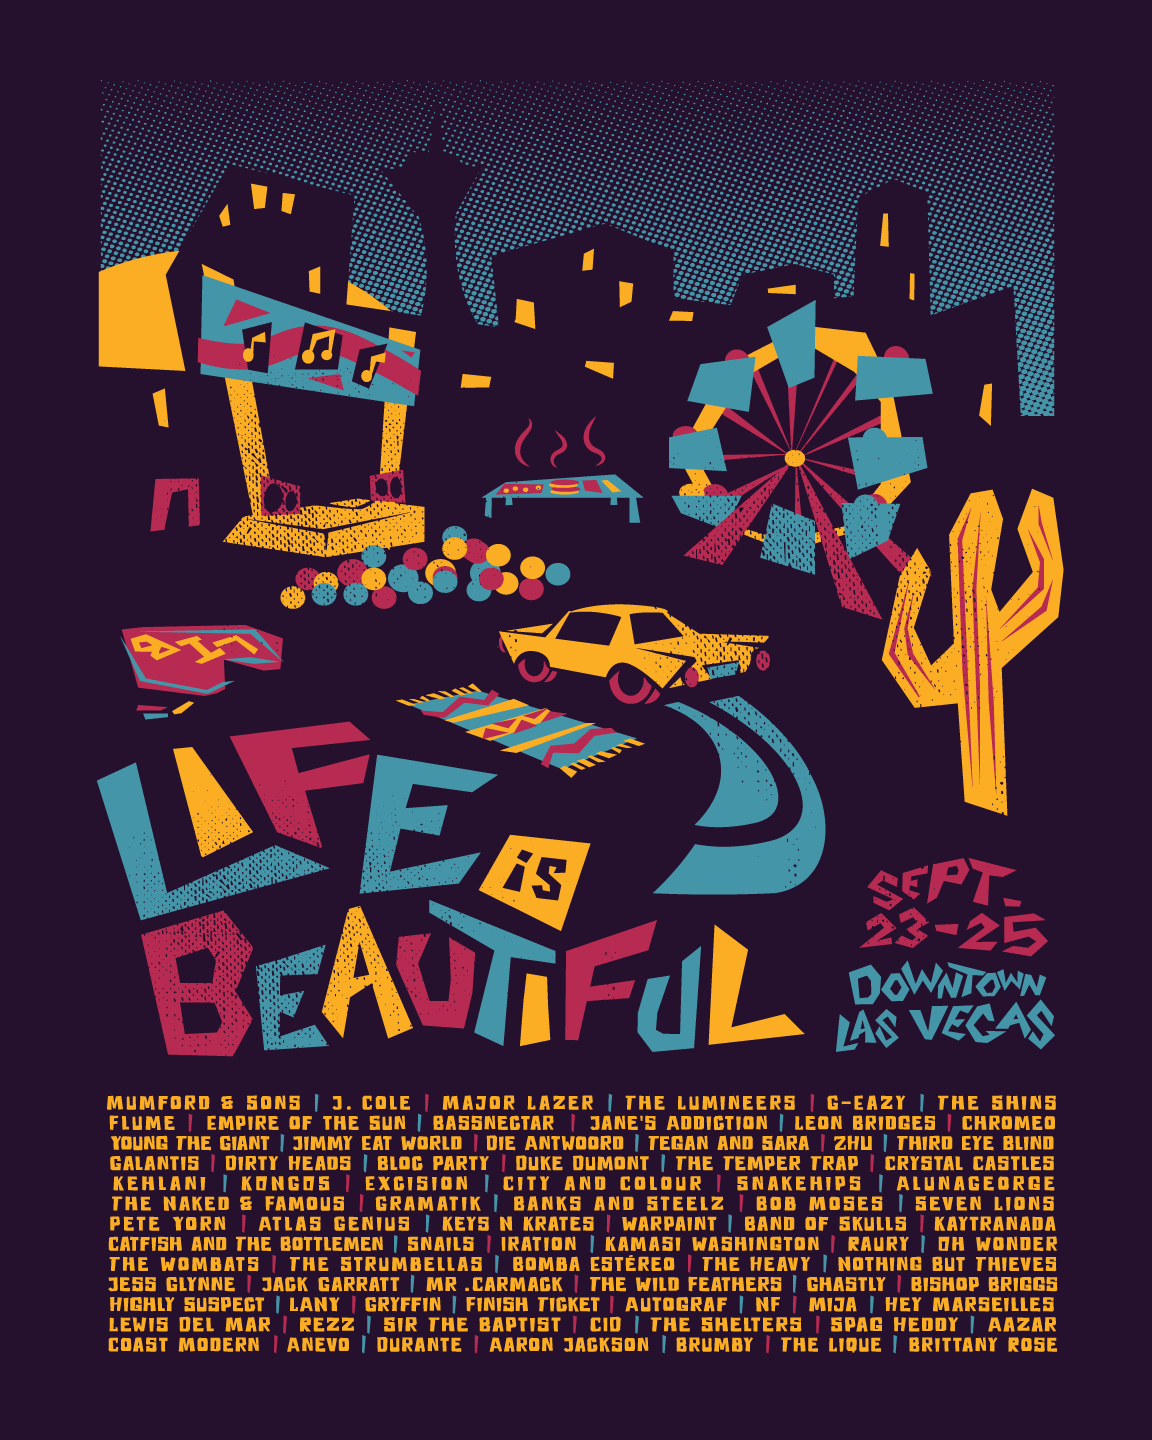 Poster design contest 2016 - This Poster Design Was My Entry For The 2016 Life Is Beautiful Poster Contest I Took First Place In The Contest And Had The Design Printed And Sold As